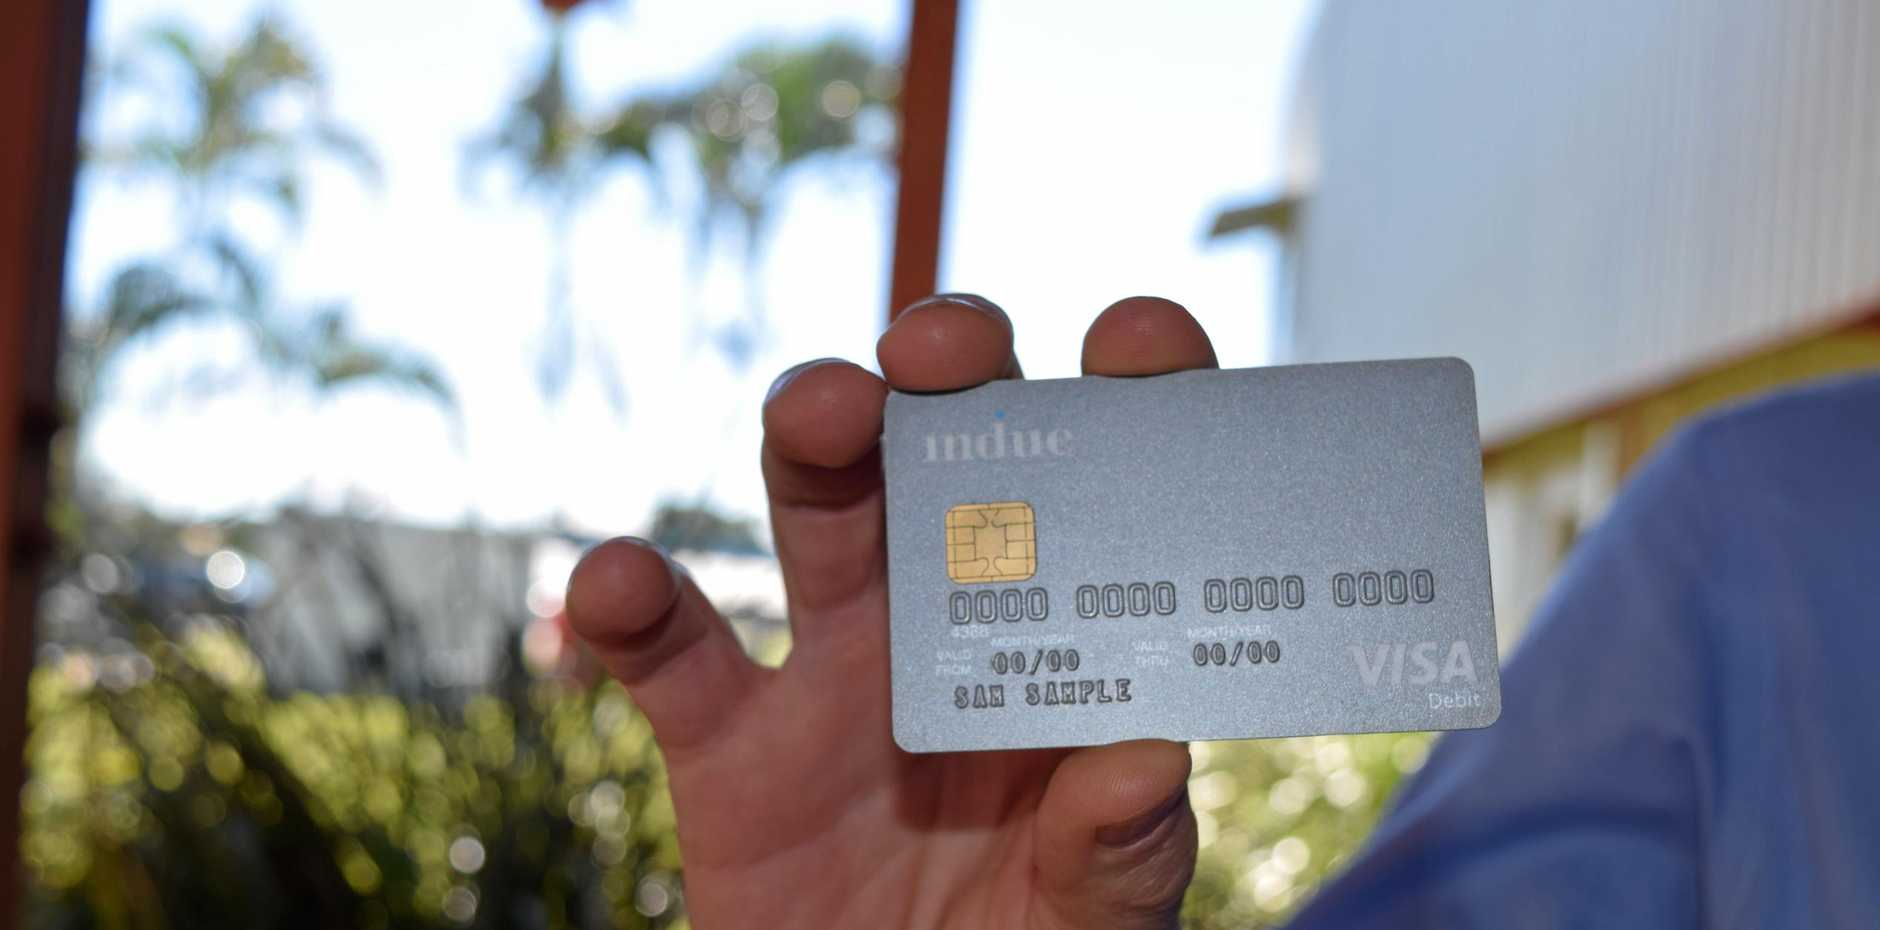 CARD COMES CLOSER: Business leaders and activists in the Hervey Bay community have shared their thoughts on the latest finding from the Senate Committee on the cashless welfare card.